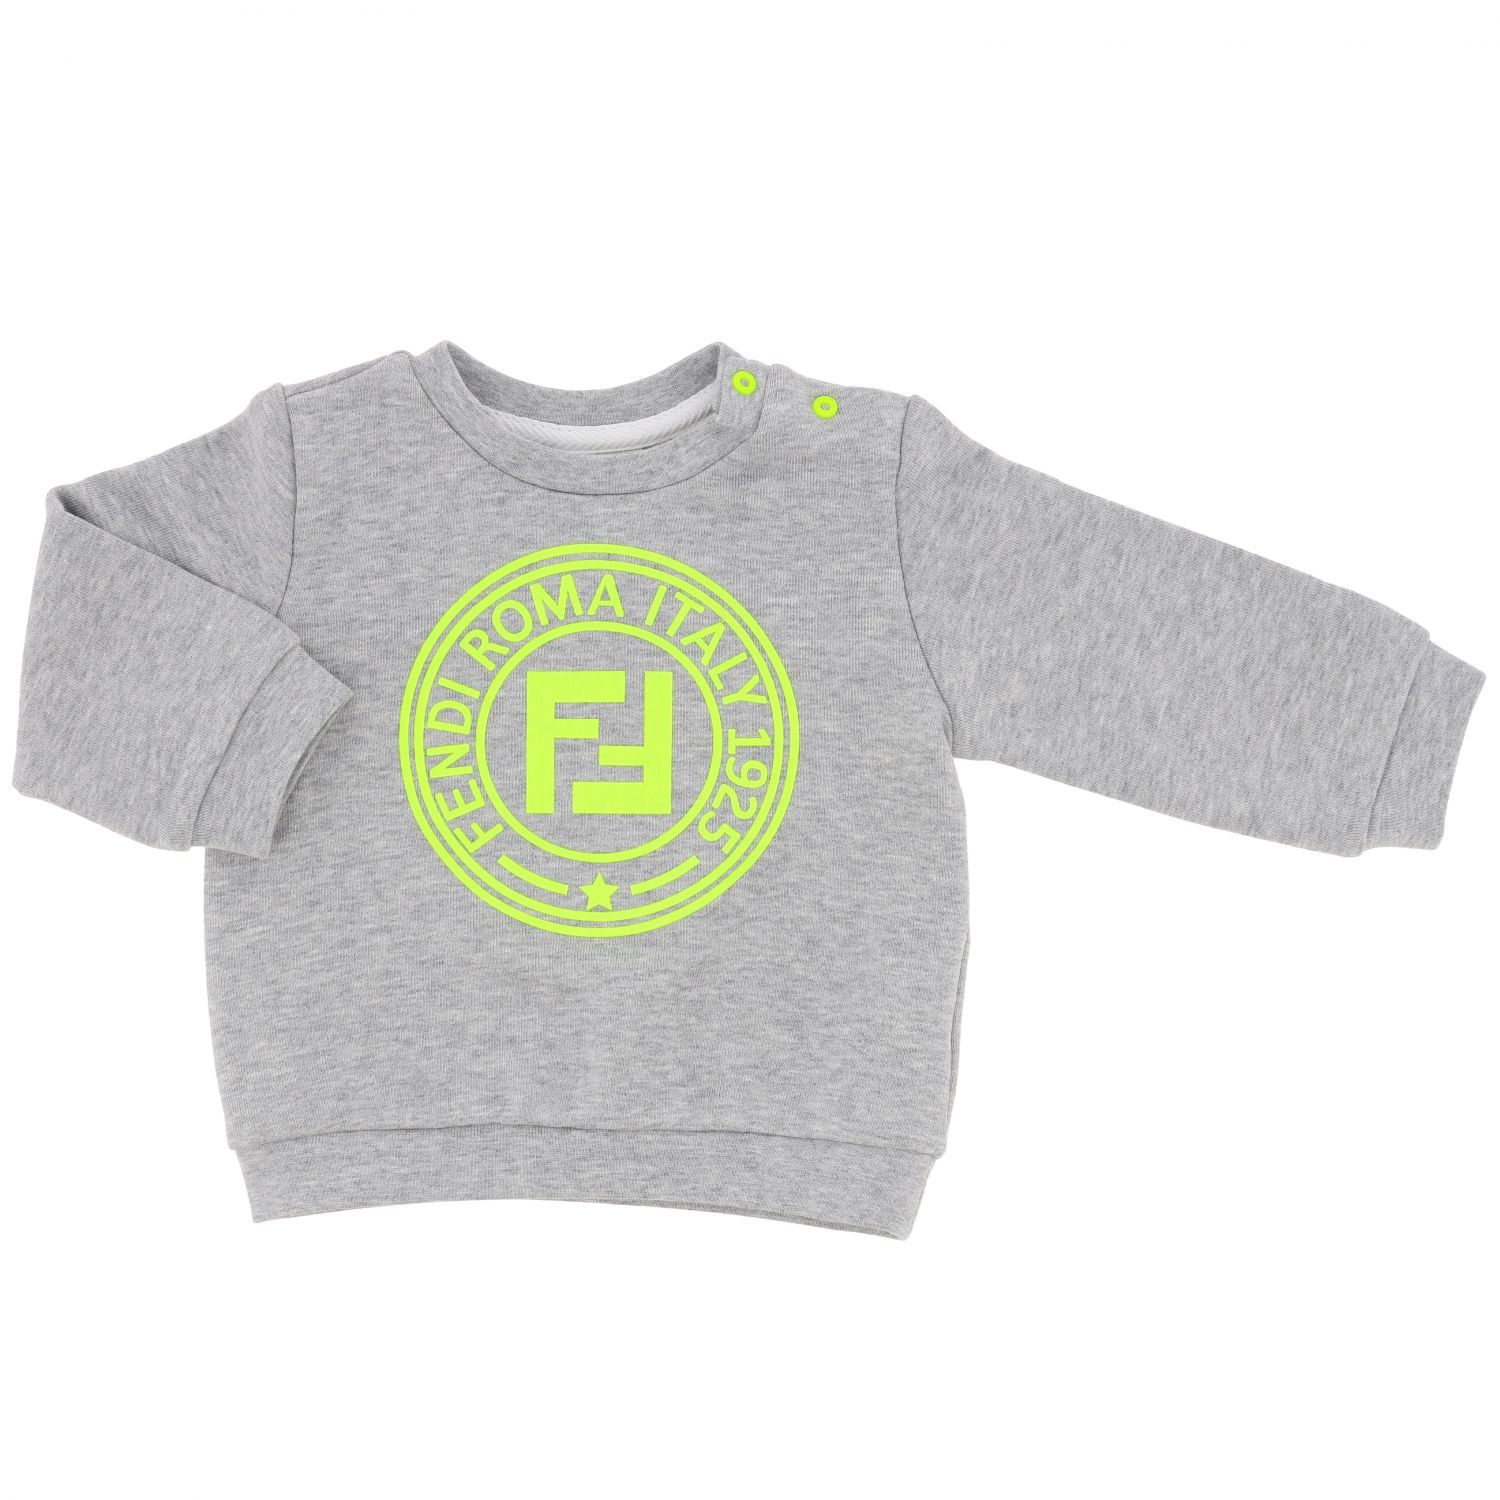 Jumper kids Fendi grey 1